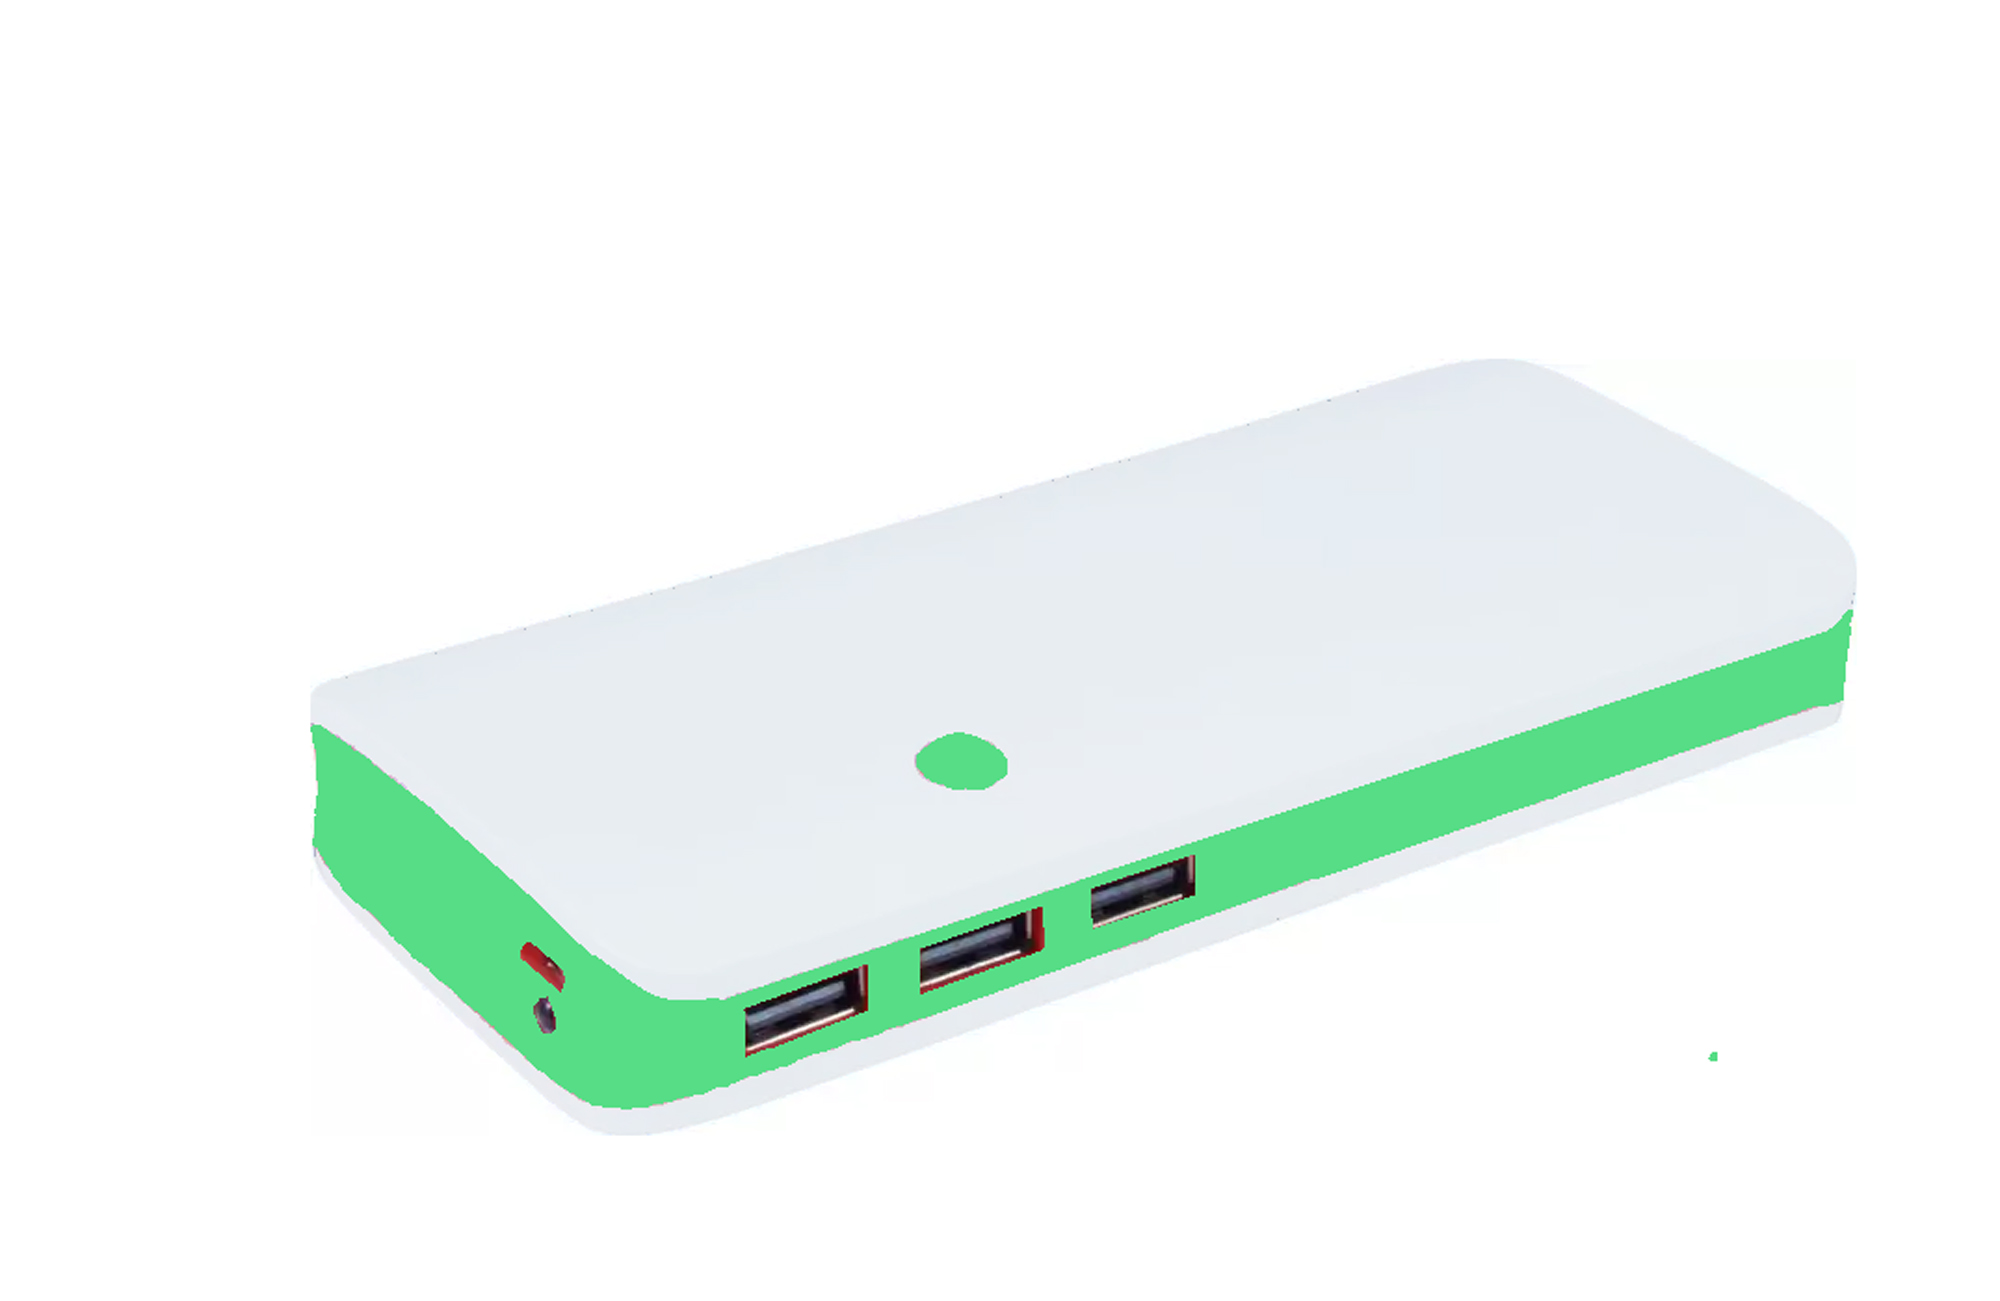 HBNS P3 20000mAh Power Bank With Fast Charging Speed,Lithiom ion Battery,Fast Charger